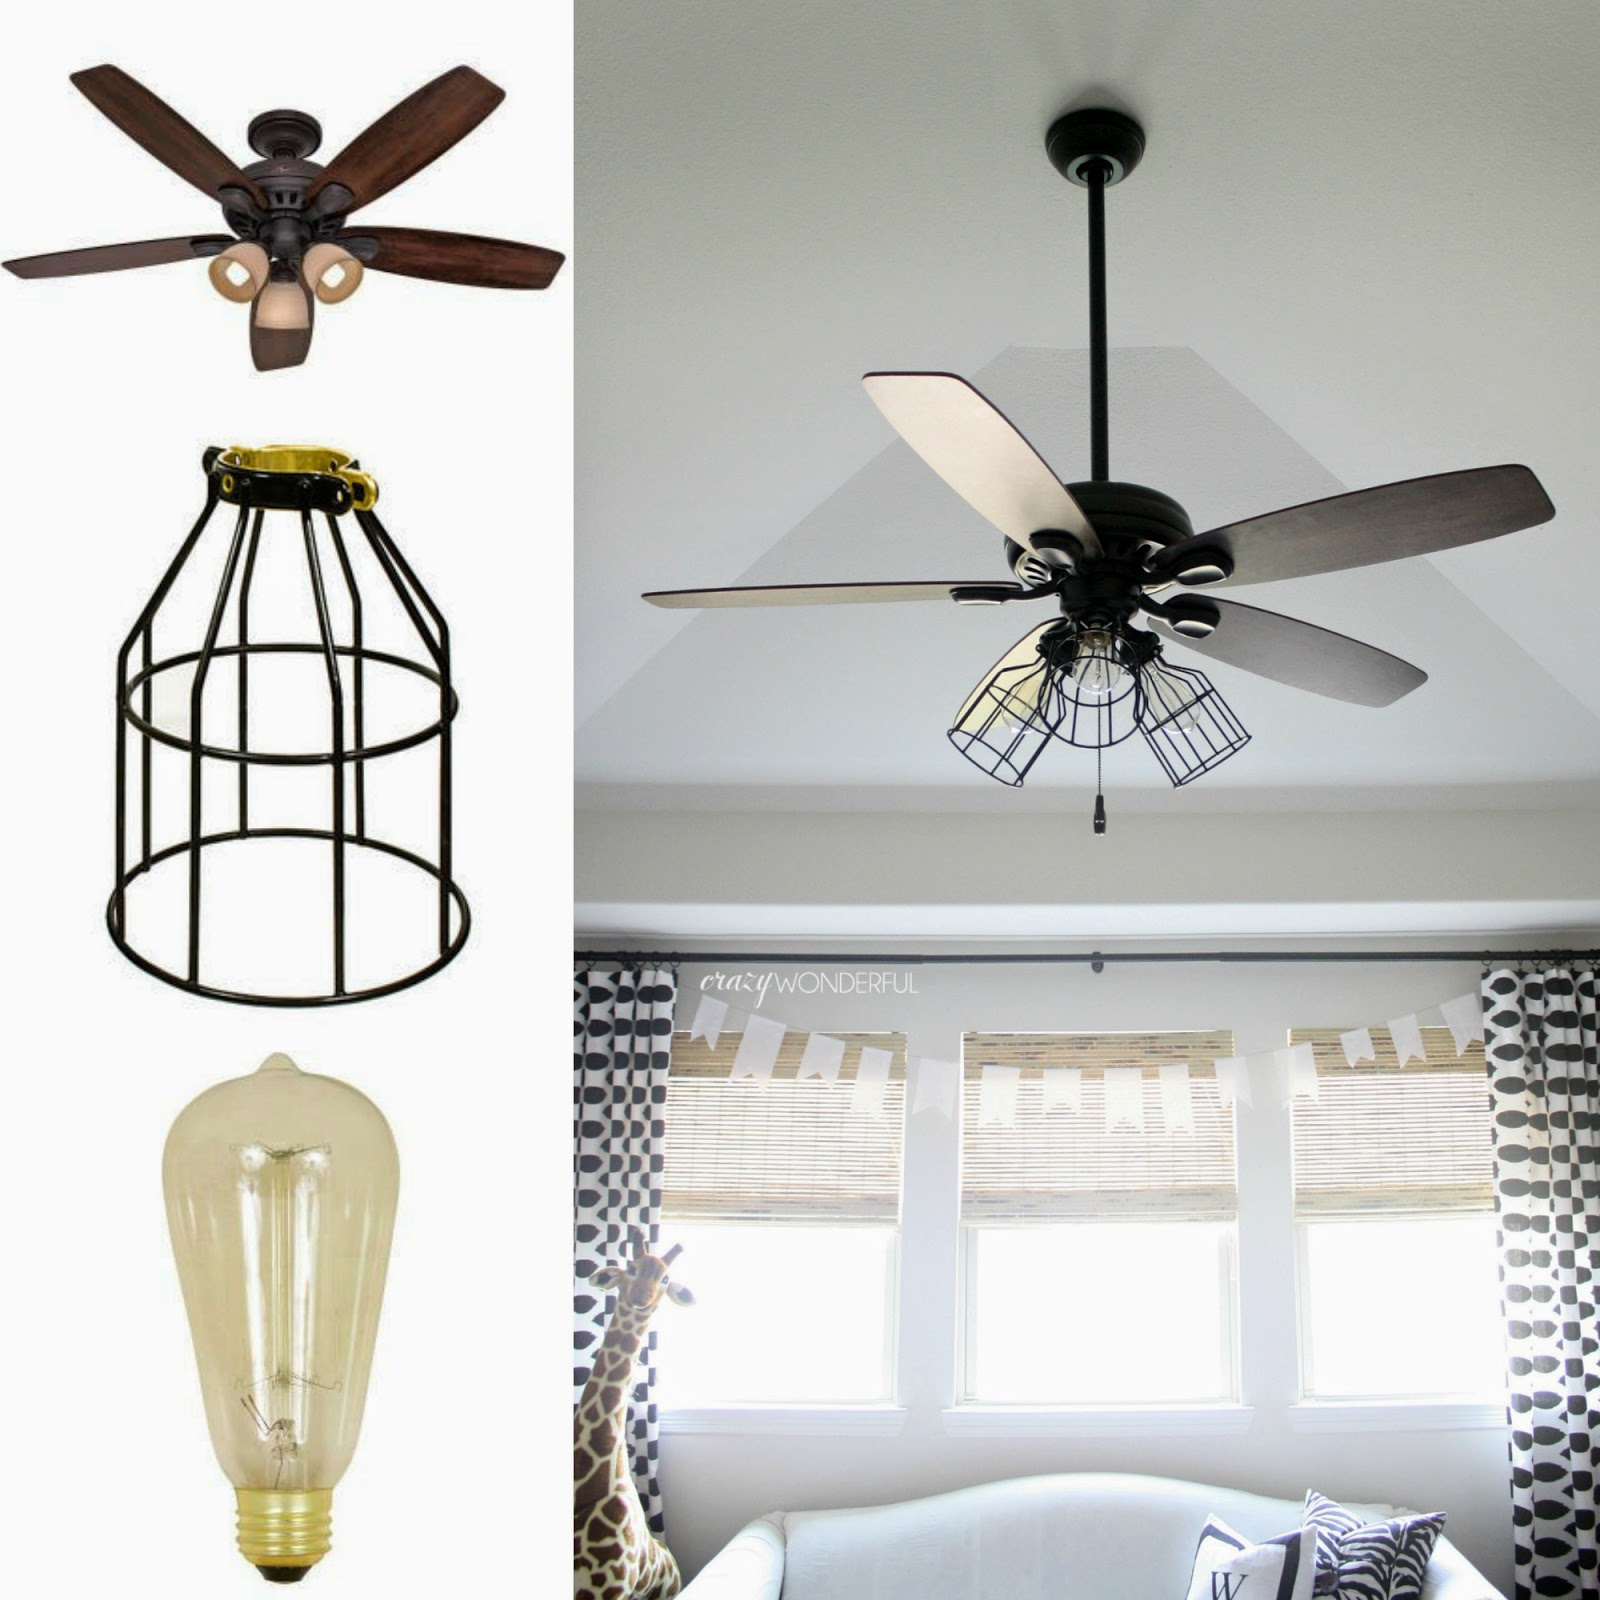 DIY Cage Light Ceiling Fan Crazy Wonderful - Kitchen light fixtures with fans